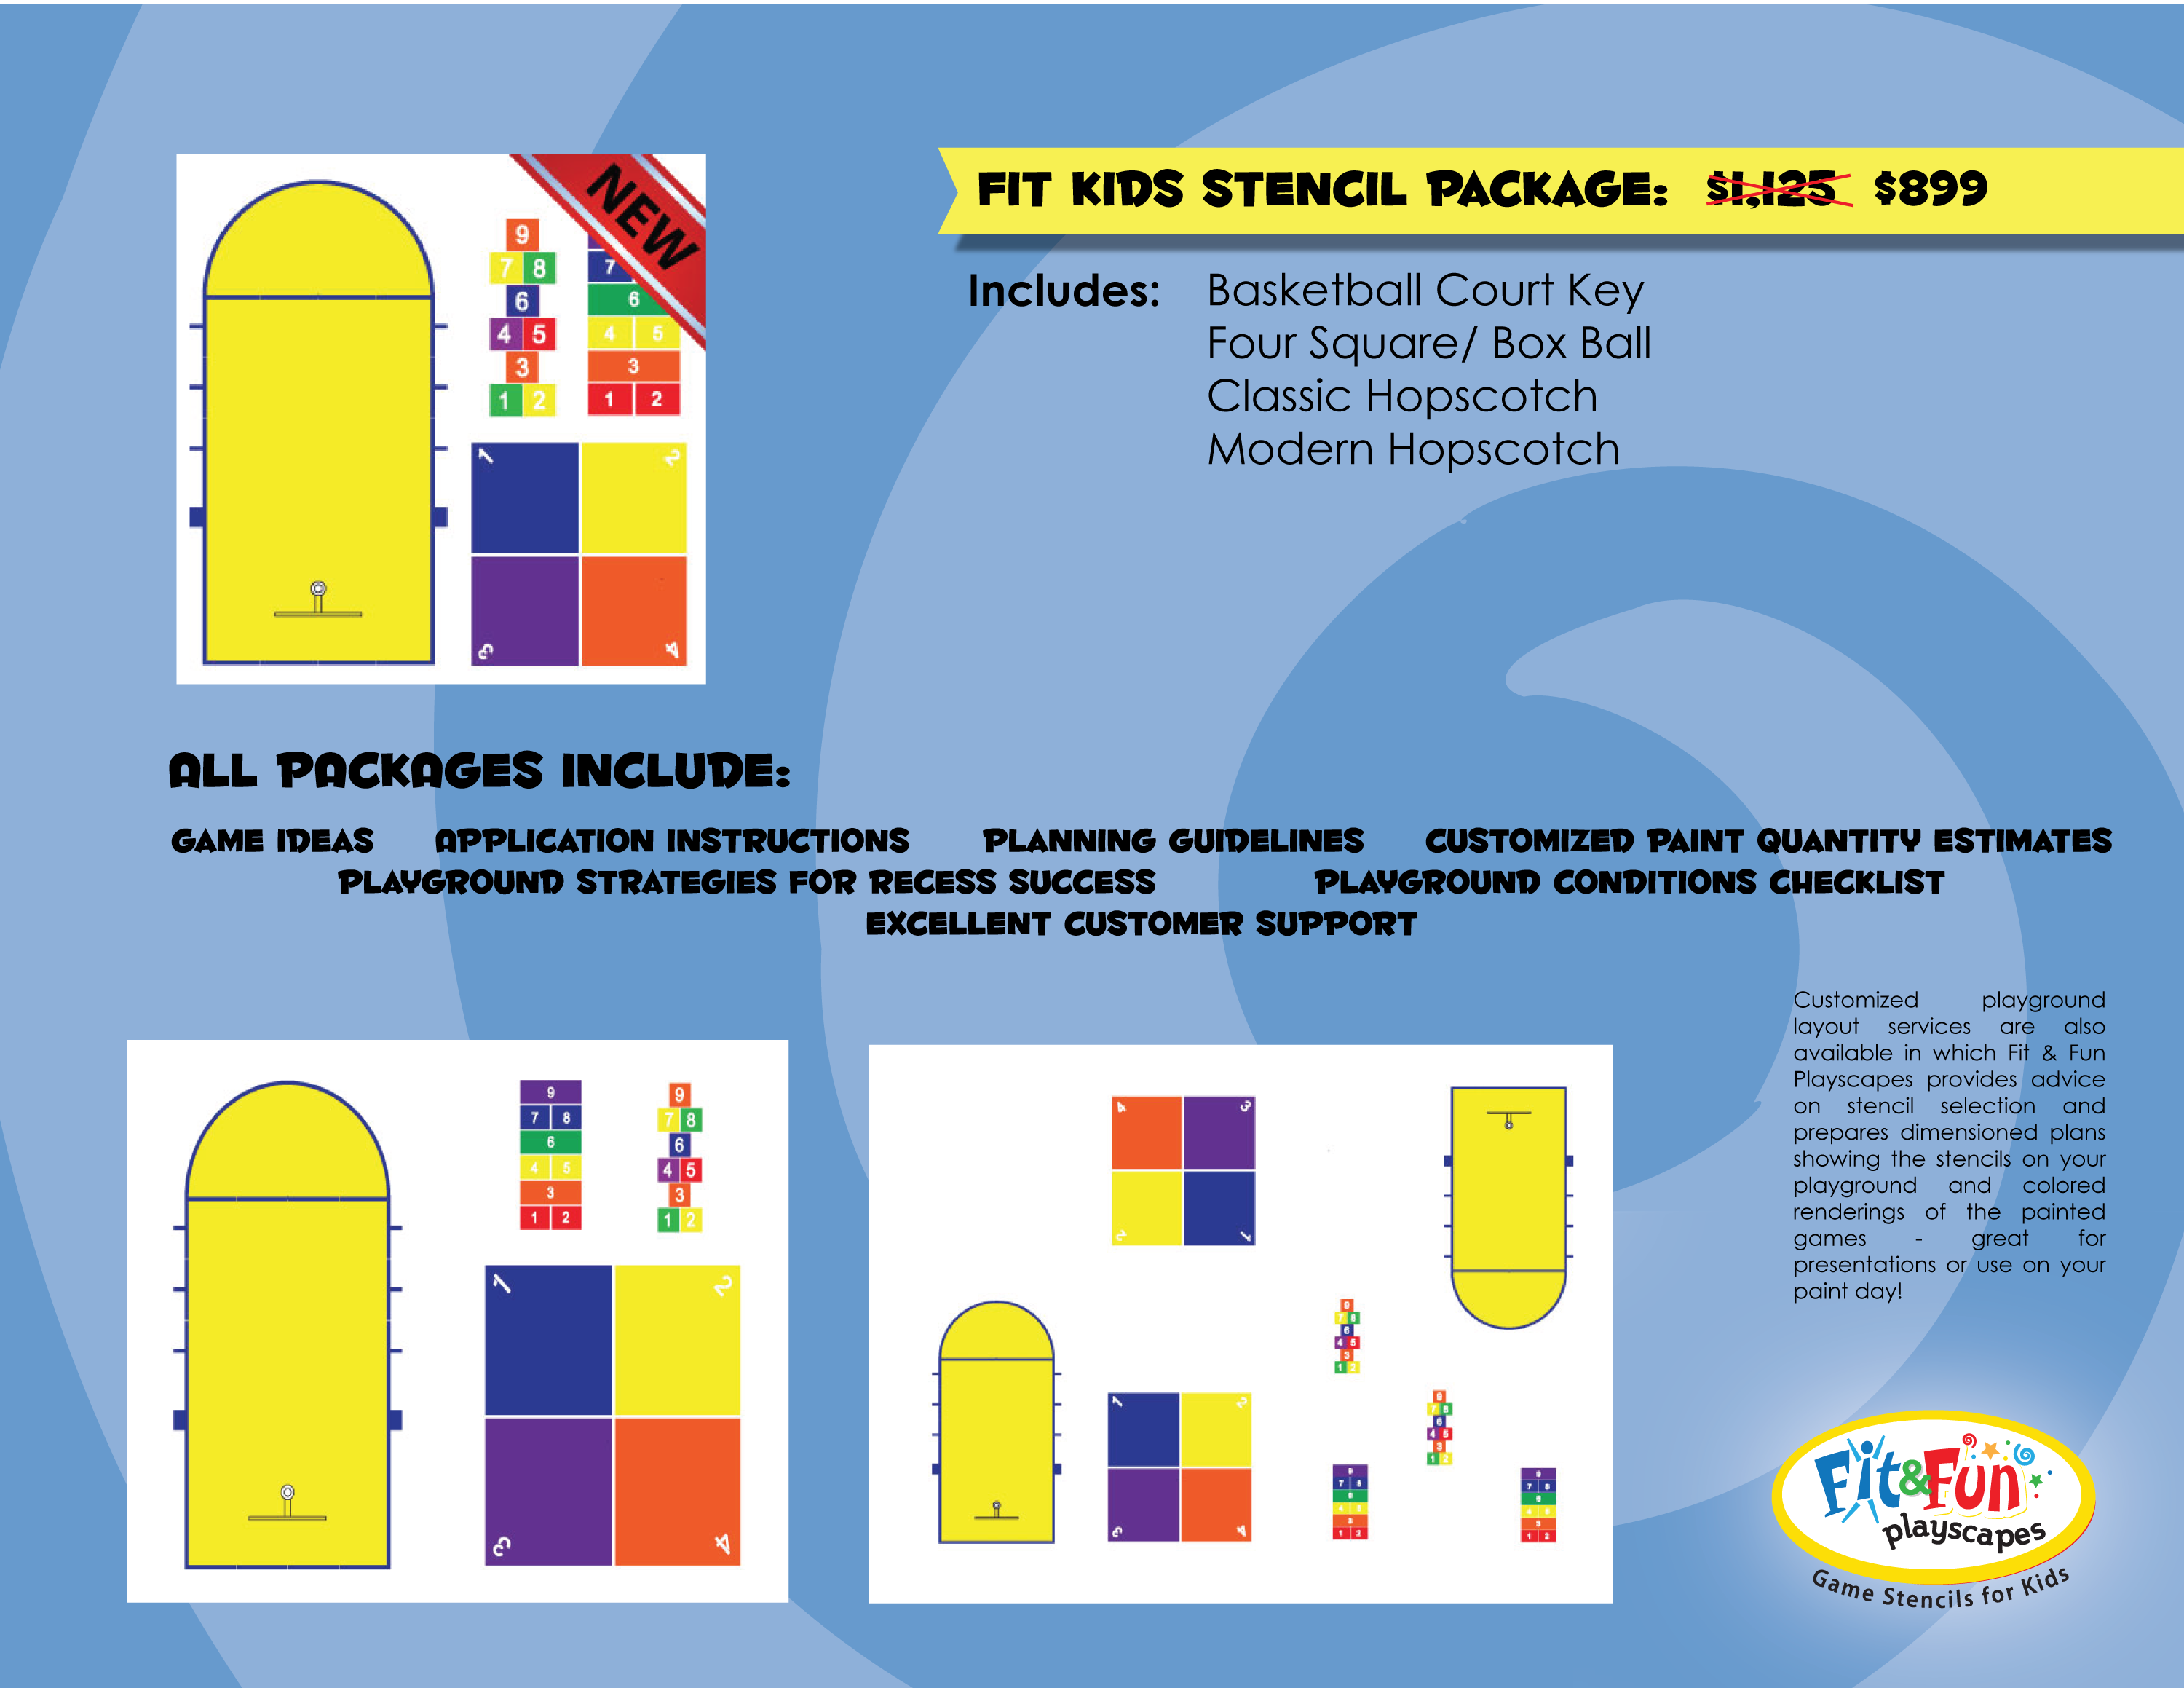 Fit Kids Stencil Package 720 and includes reusable stencils